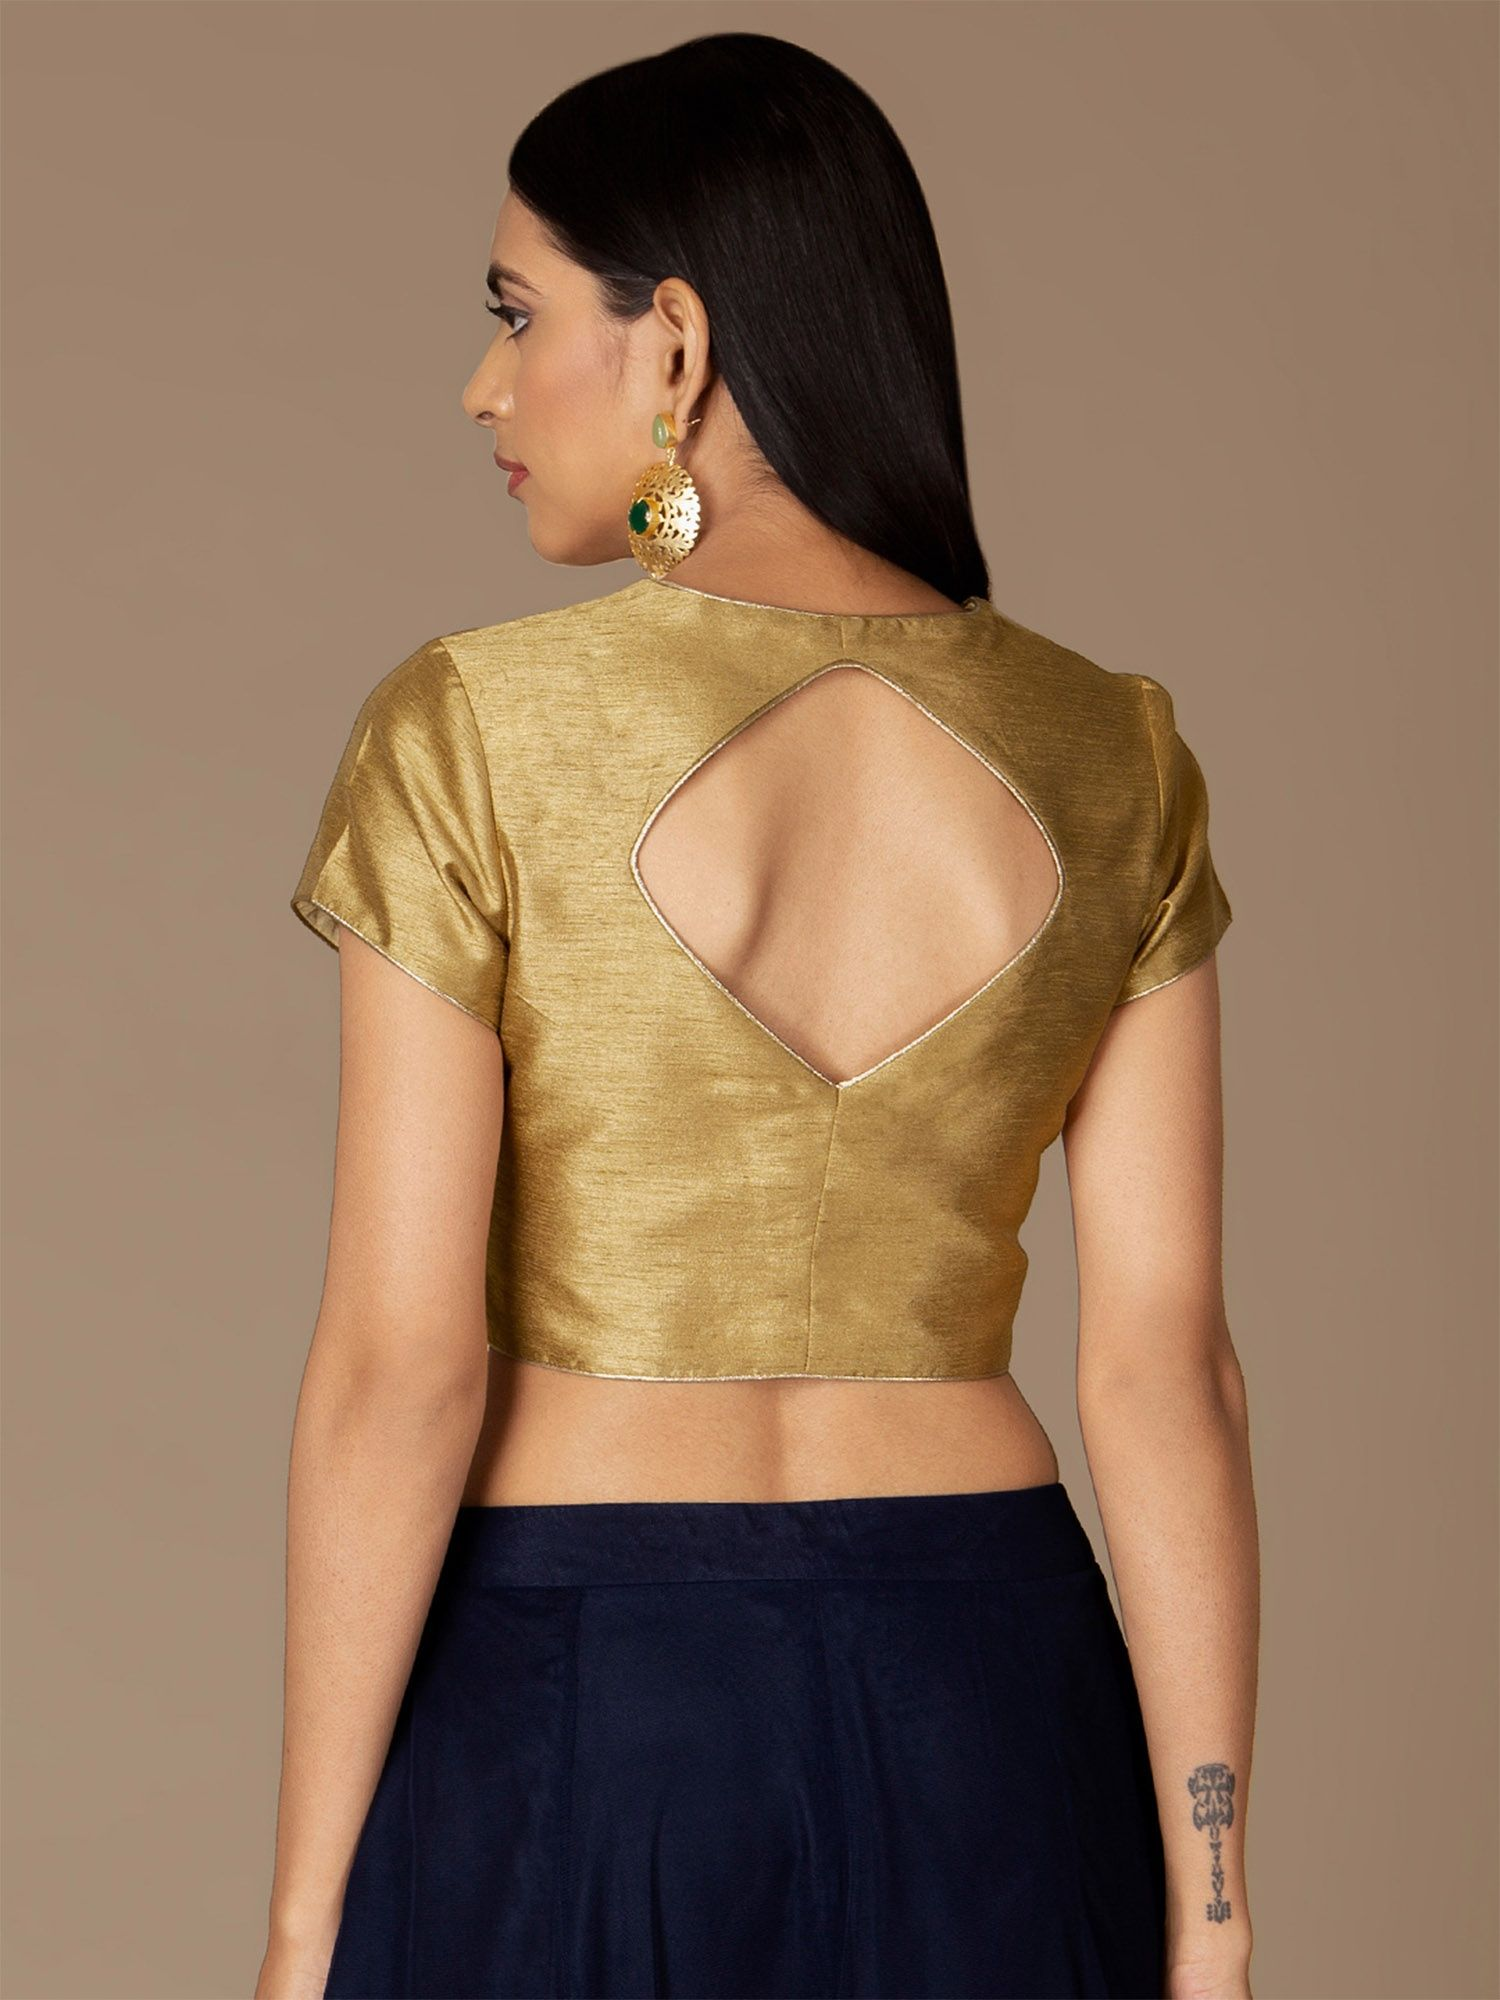 d02340173a Indya Shirts Tops and Crop Tops : Buy Indya Gold Sweetheart Neck ...